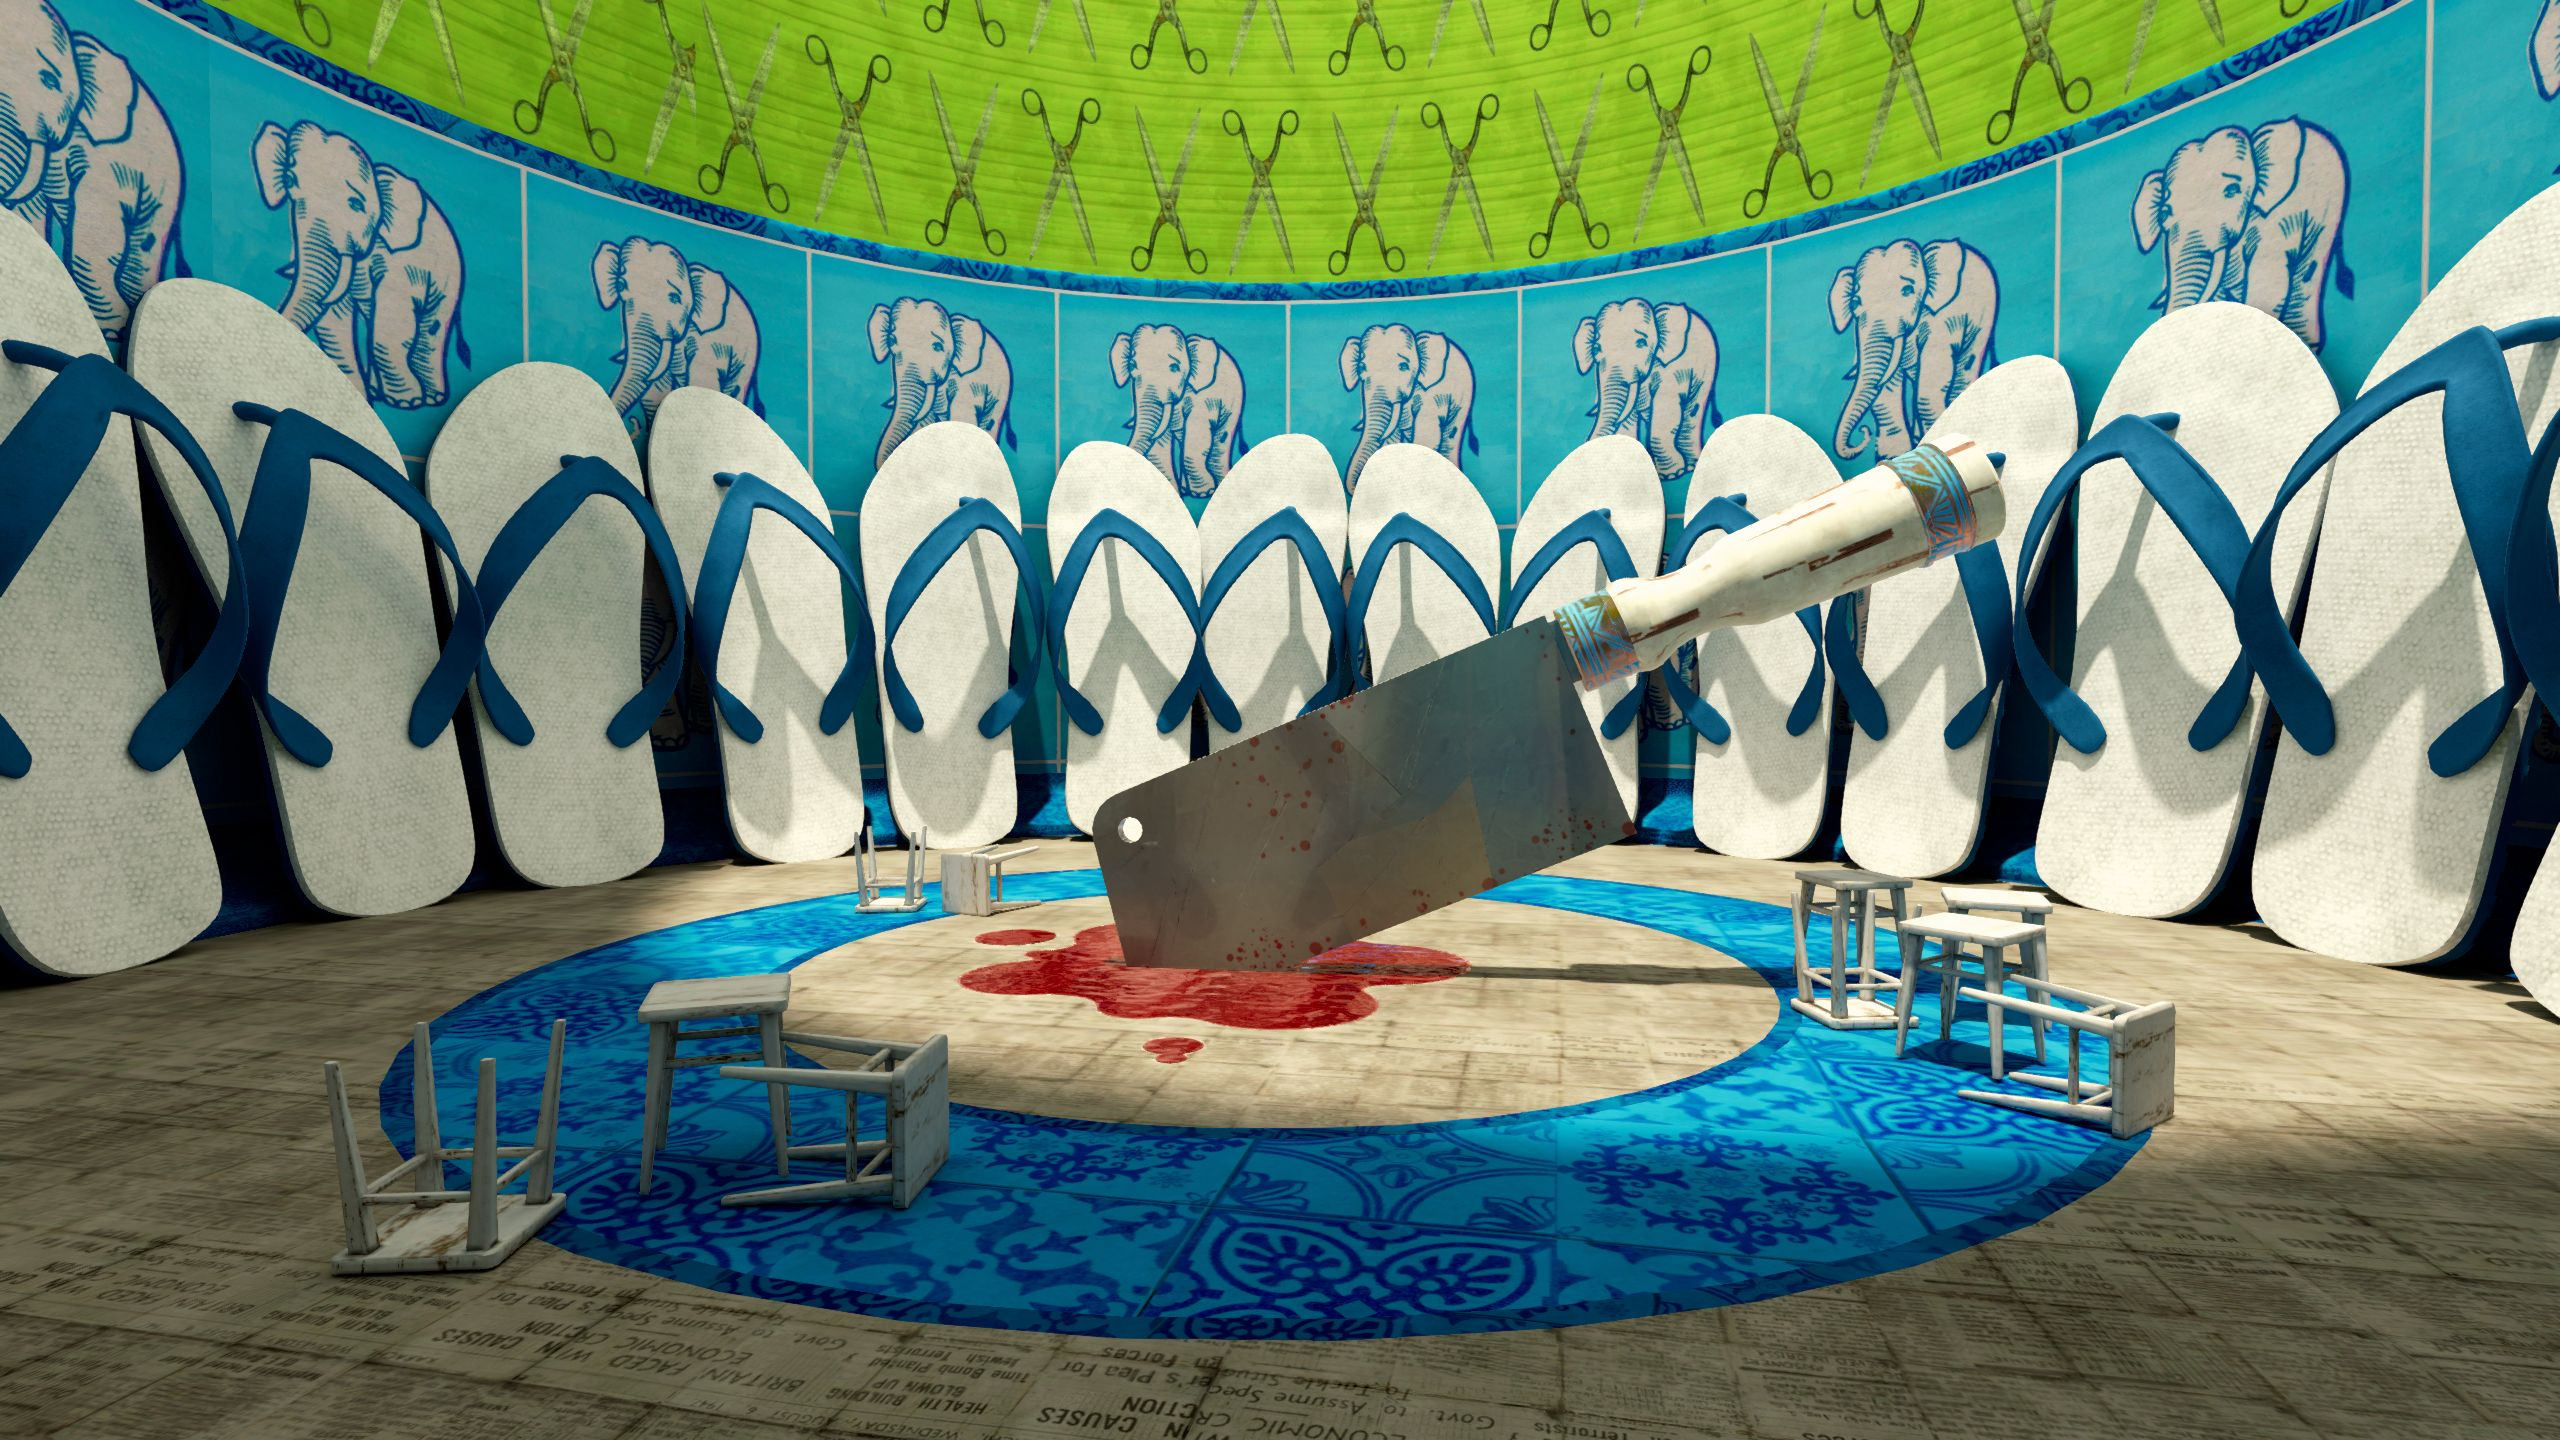 A cleaver is emedded into the floor of a colourful, circular interior surrounded by giant flip flops